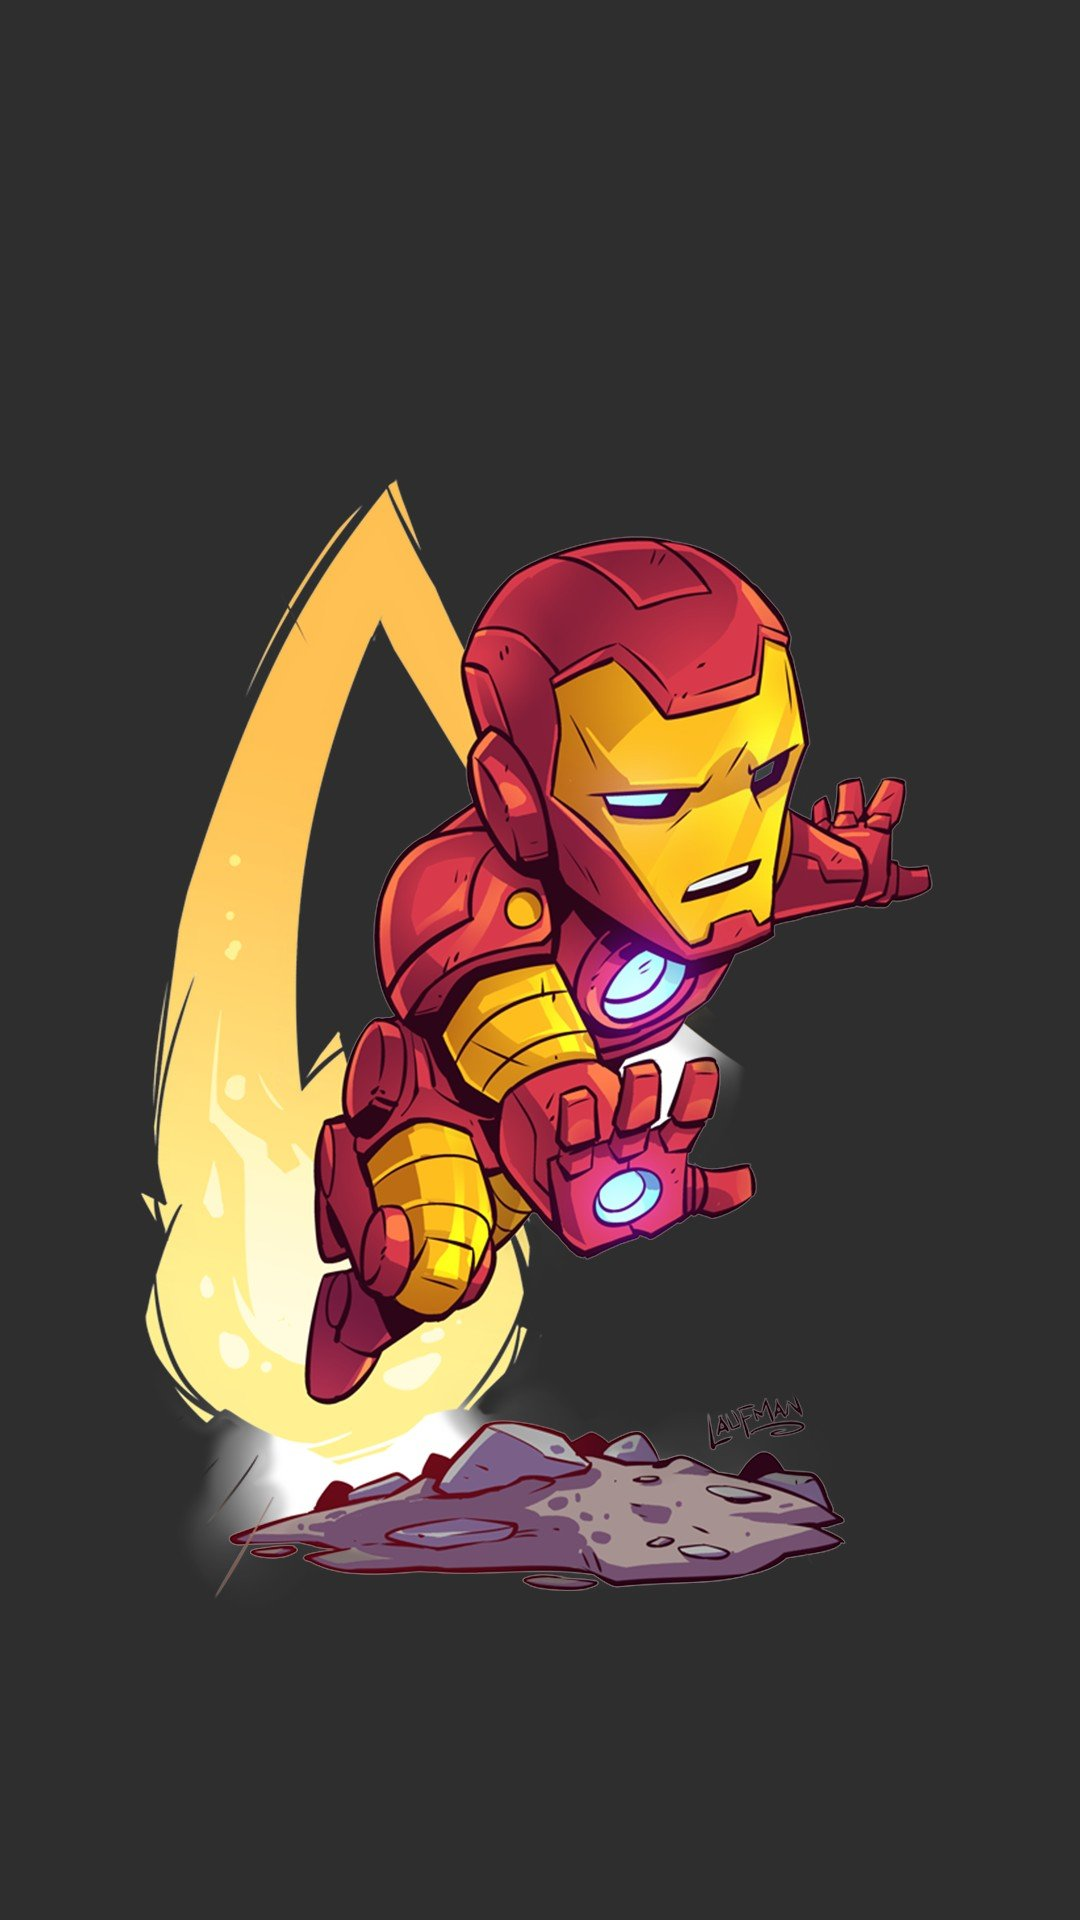 Superhero marvel comics iron man hd wallpapers desktop - Iron man wallpaper anime ...